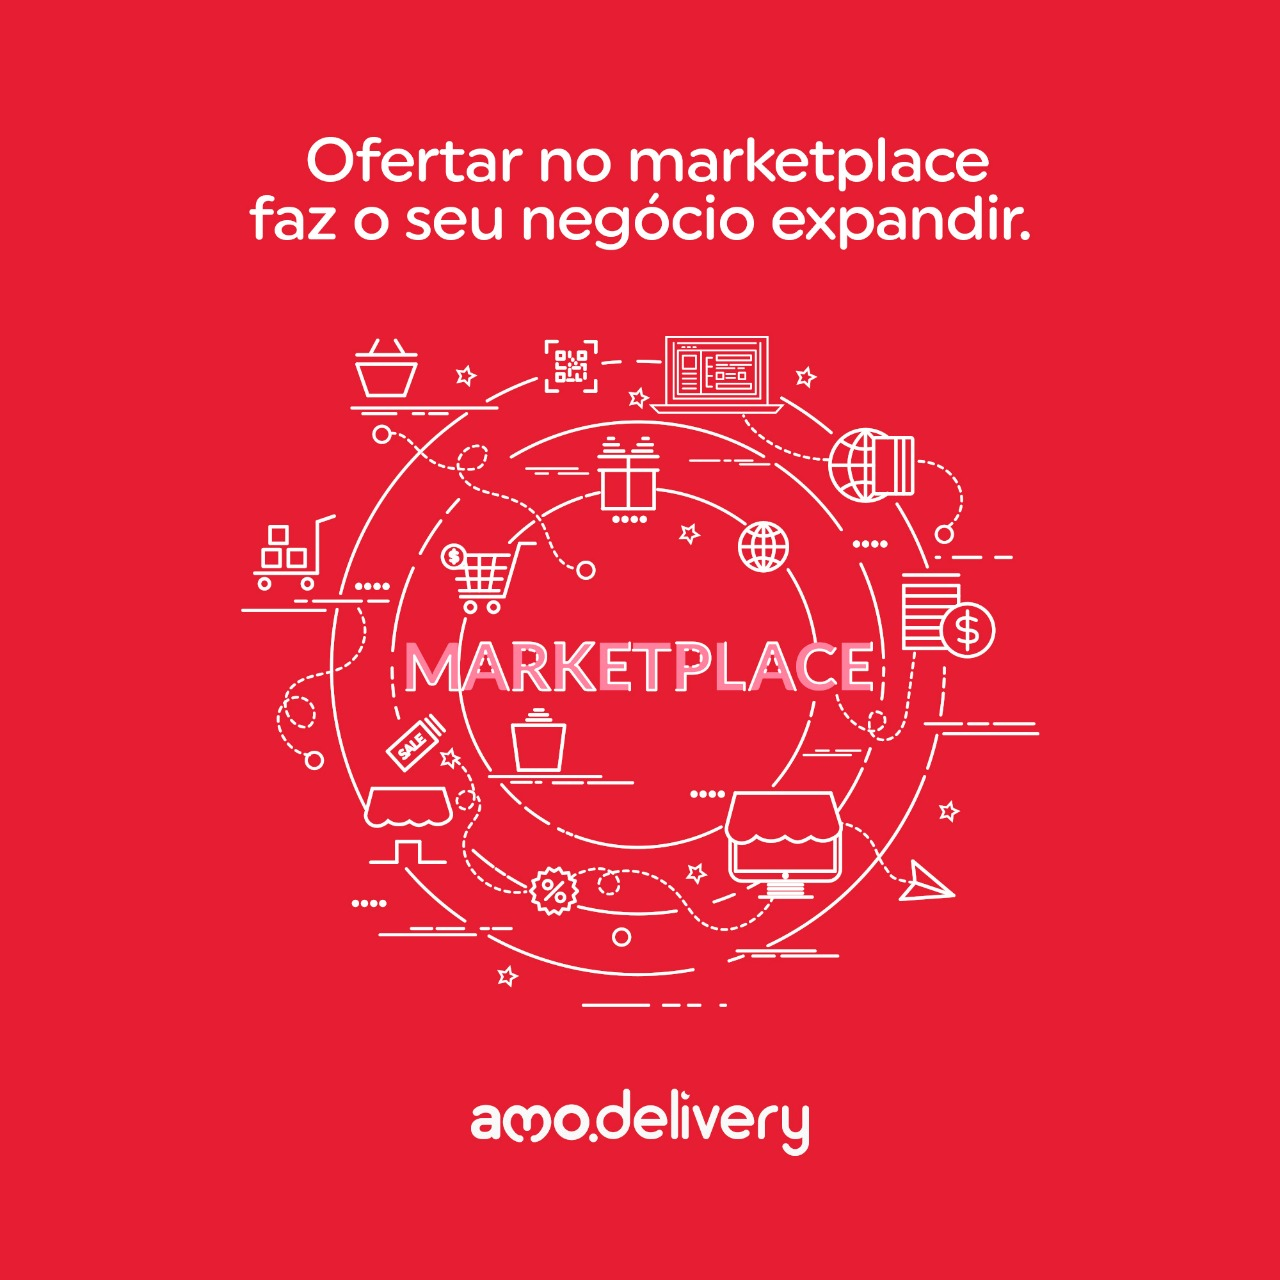 Oferta no marketplace